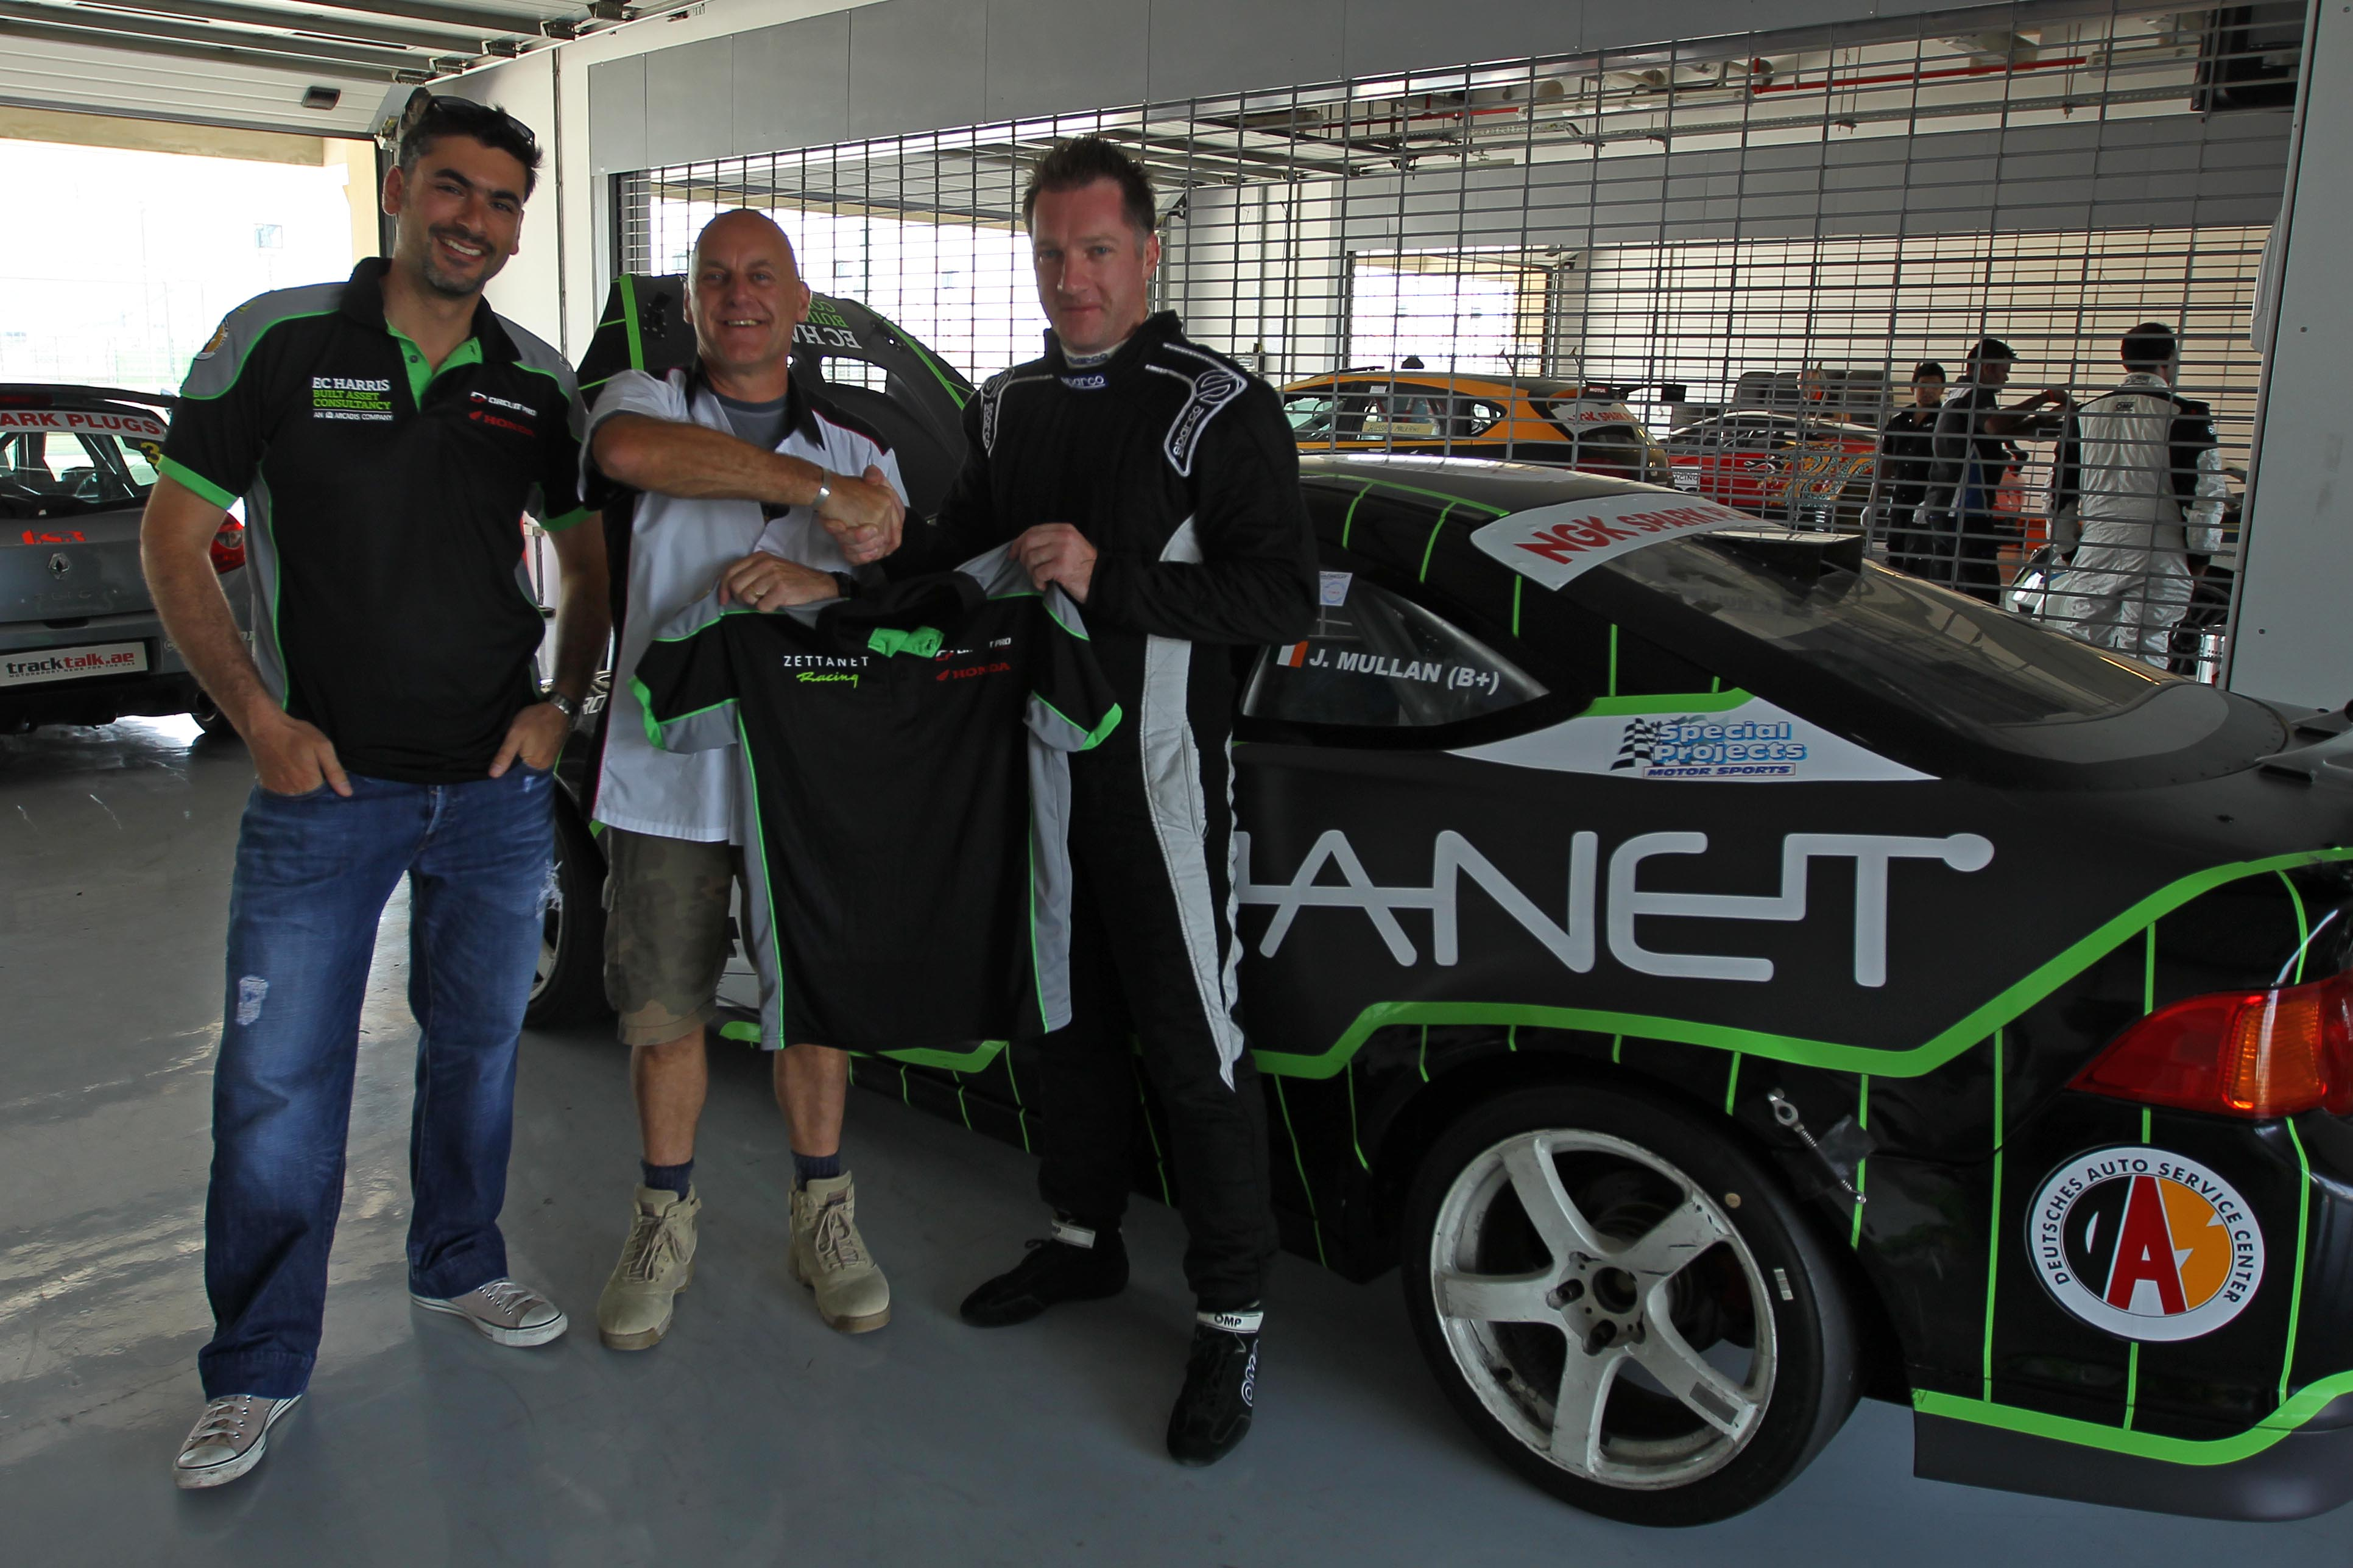 Dubai – Zettanet Race Team welcomes the Ferret into the 'Business'